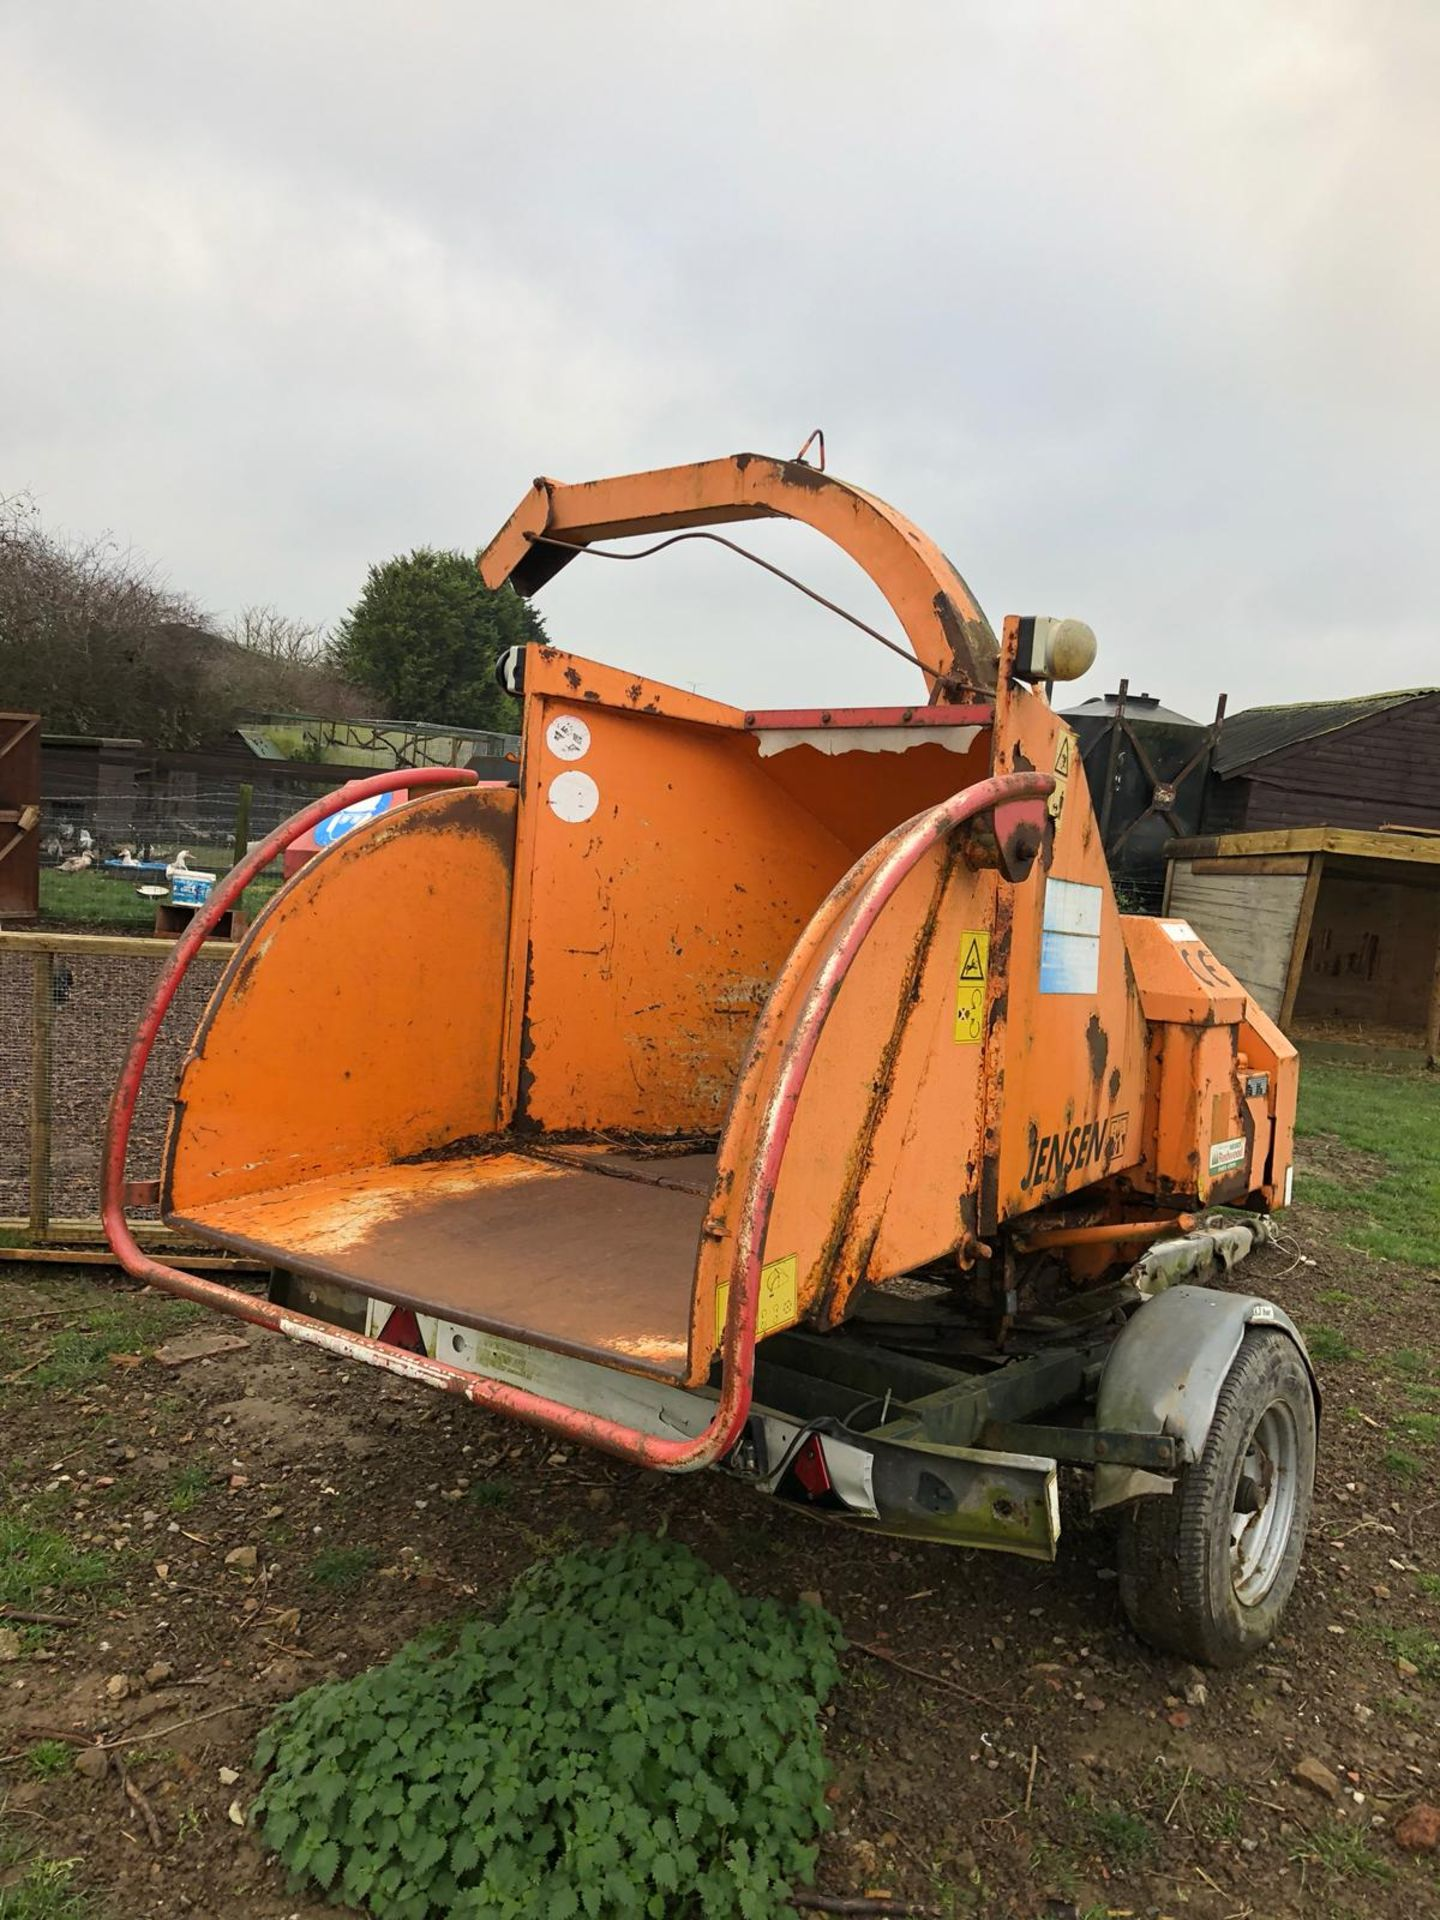 DS -QUALITY 2004 JENSEN DIESEL TURNTABLE CHIPPER, QUALITY TRAILER - Image 4 of 8